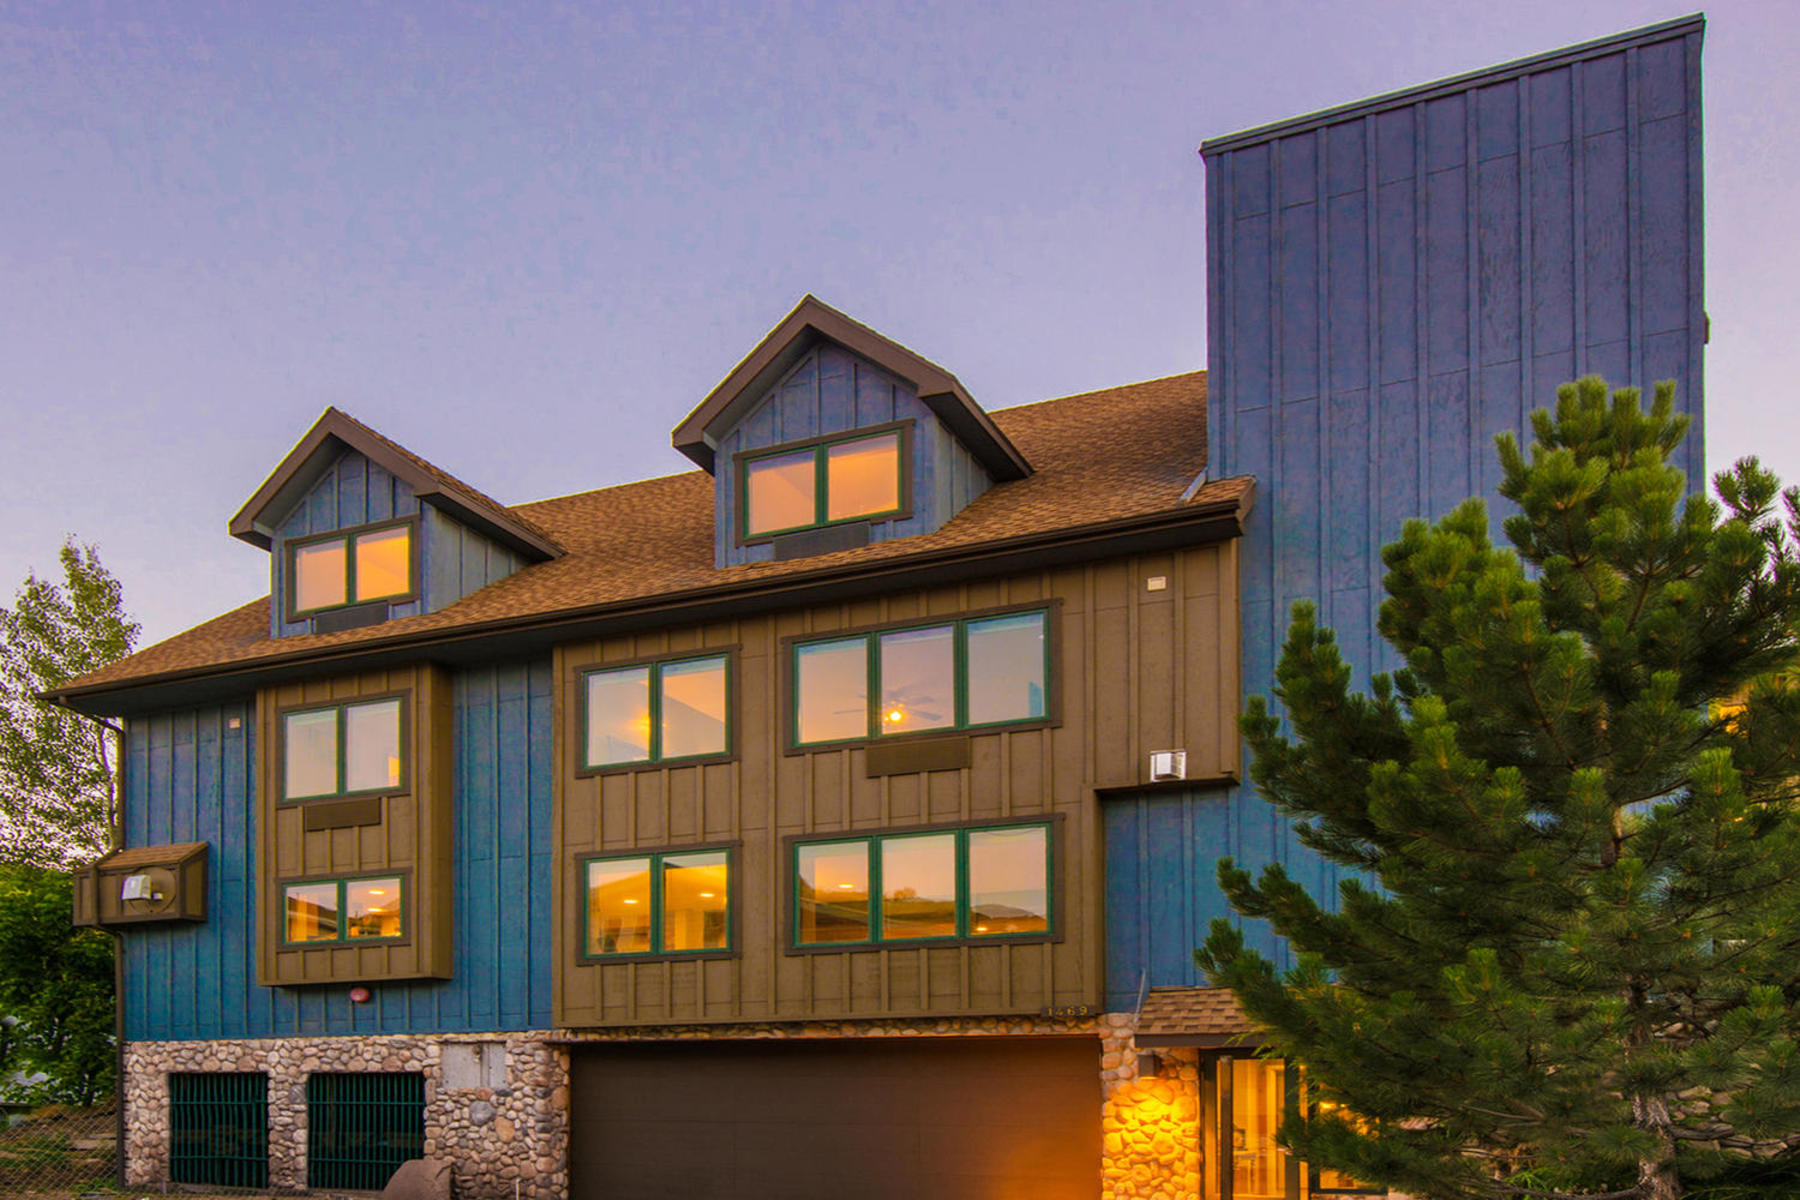 Additional photo for property listing at Park City Epic Lodge 1469 Woodside Ave Park City, Utah 84060 United States